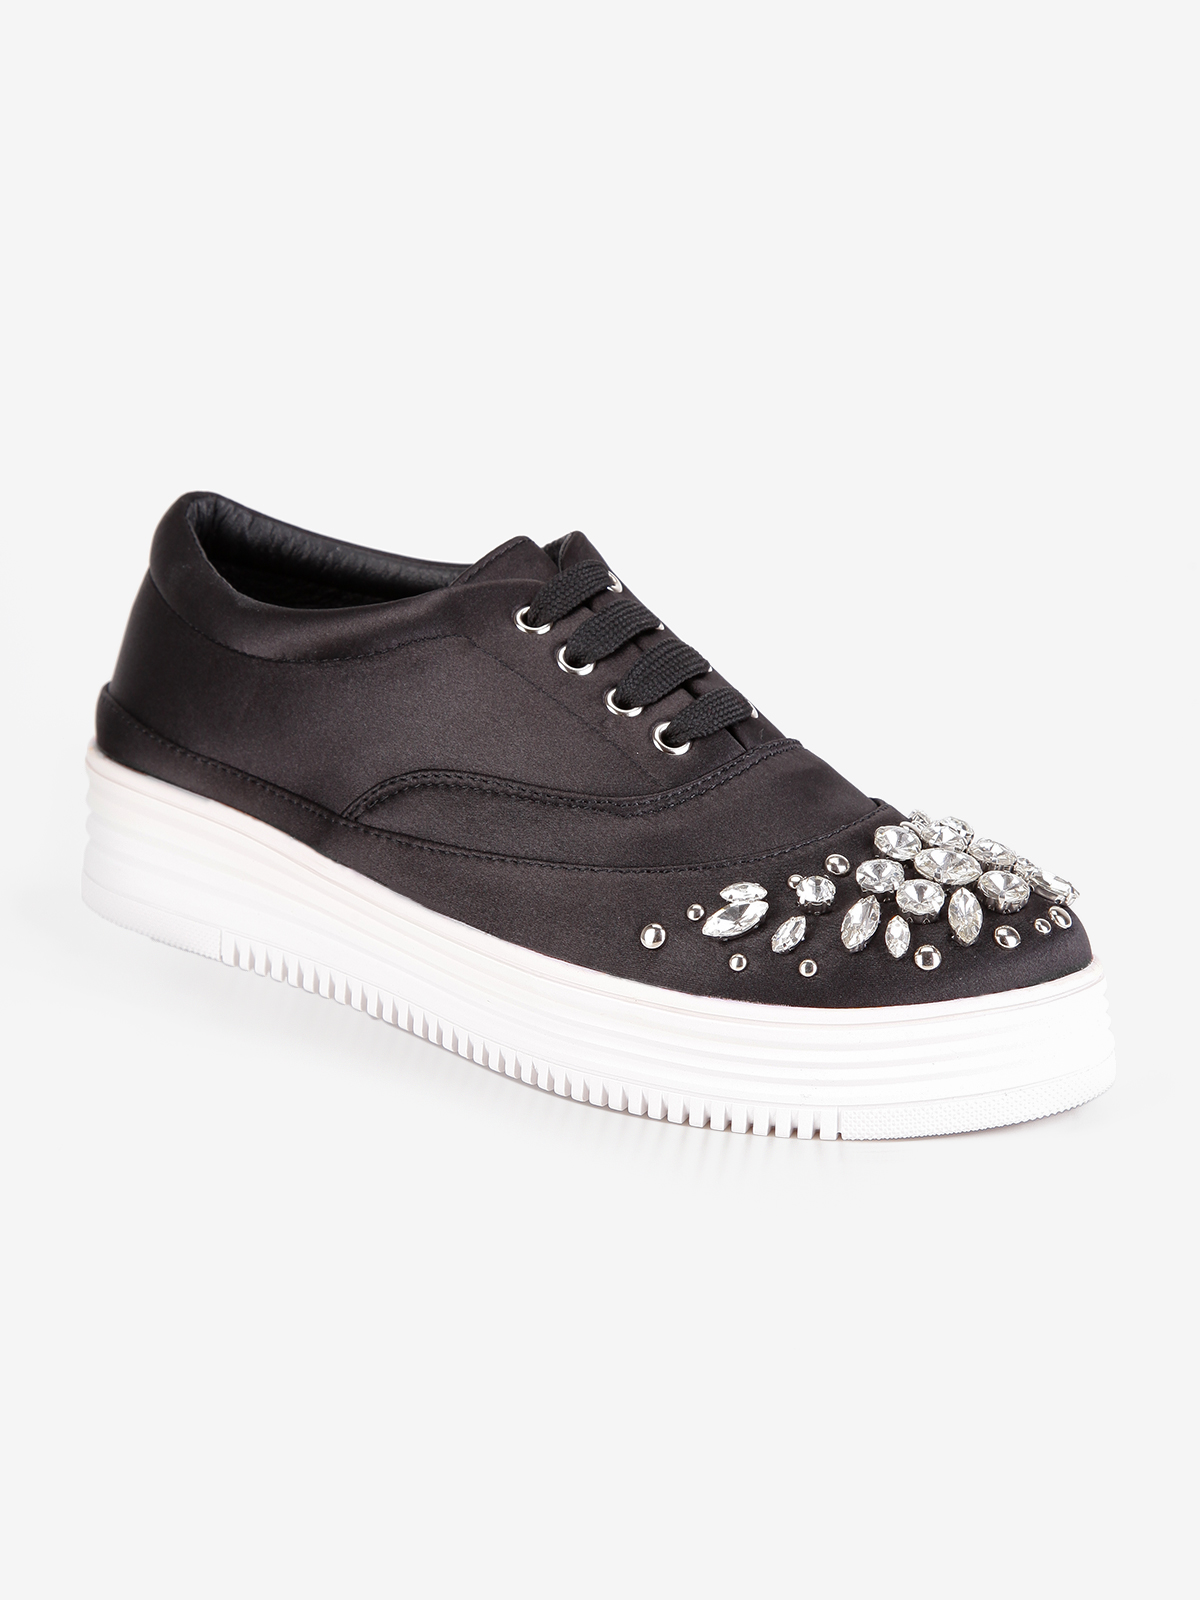 SWEET Sneakers Shoes With Rhinestones And Studs